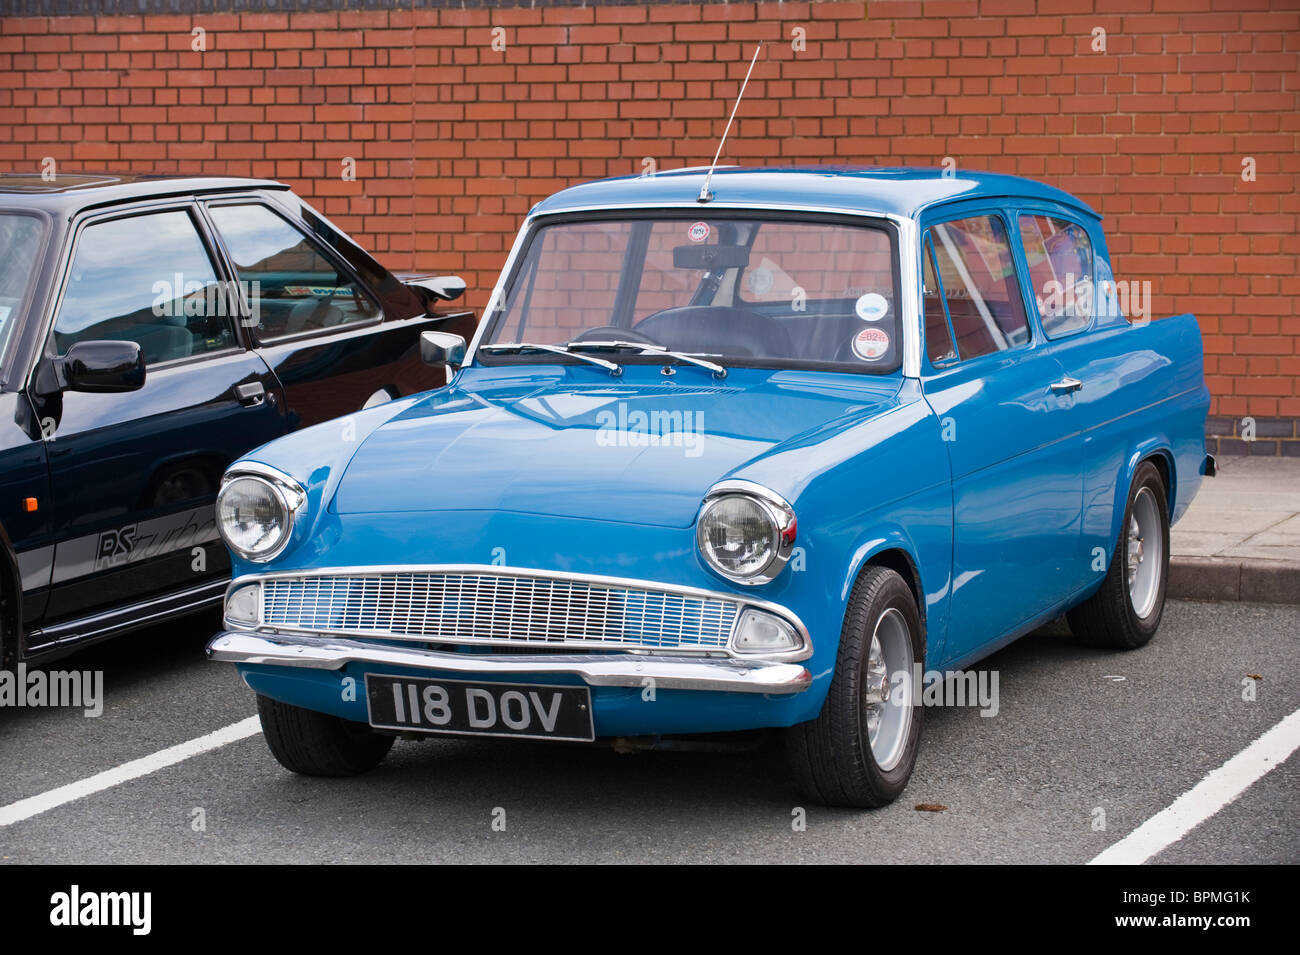 Blue ford anglia restored classic british motorcar